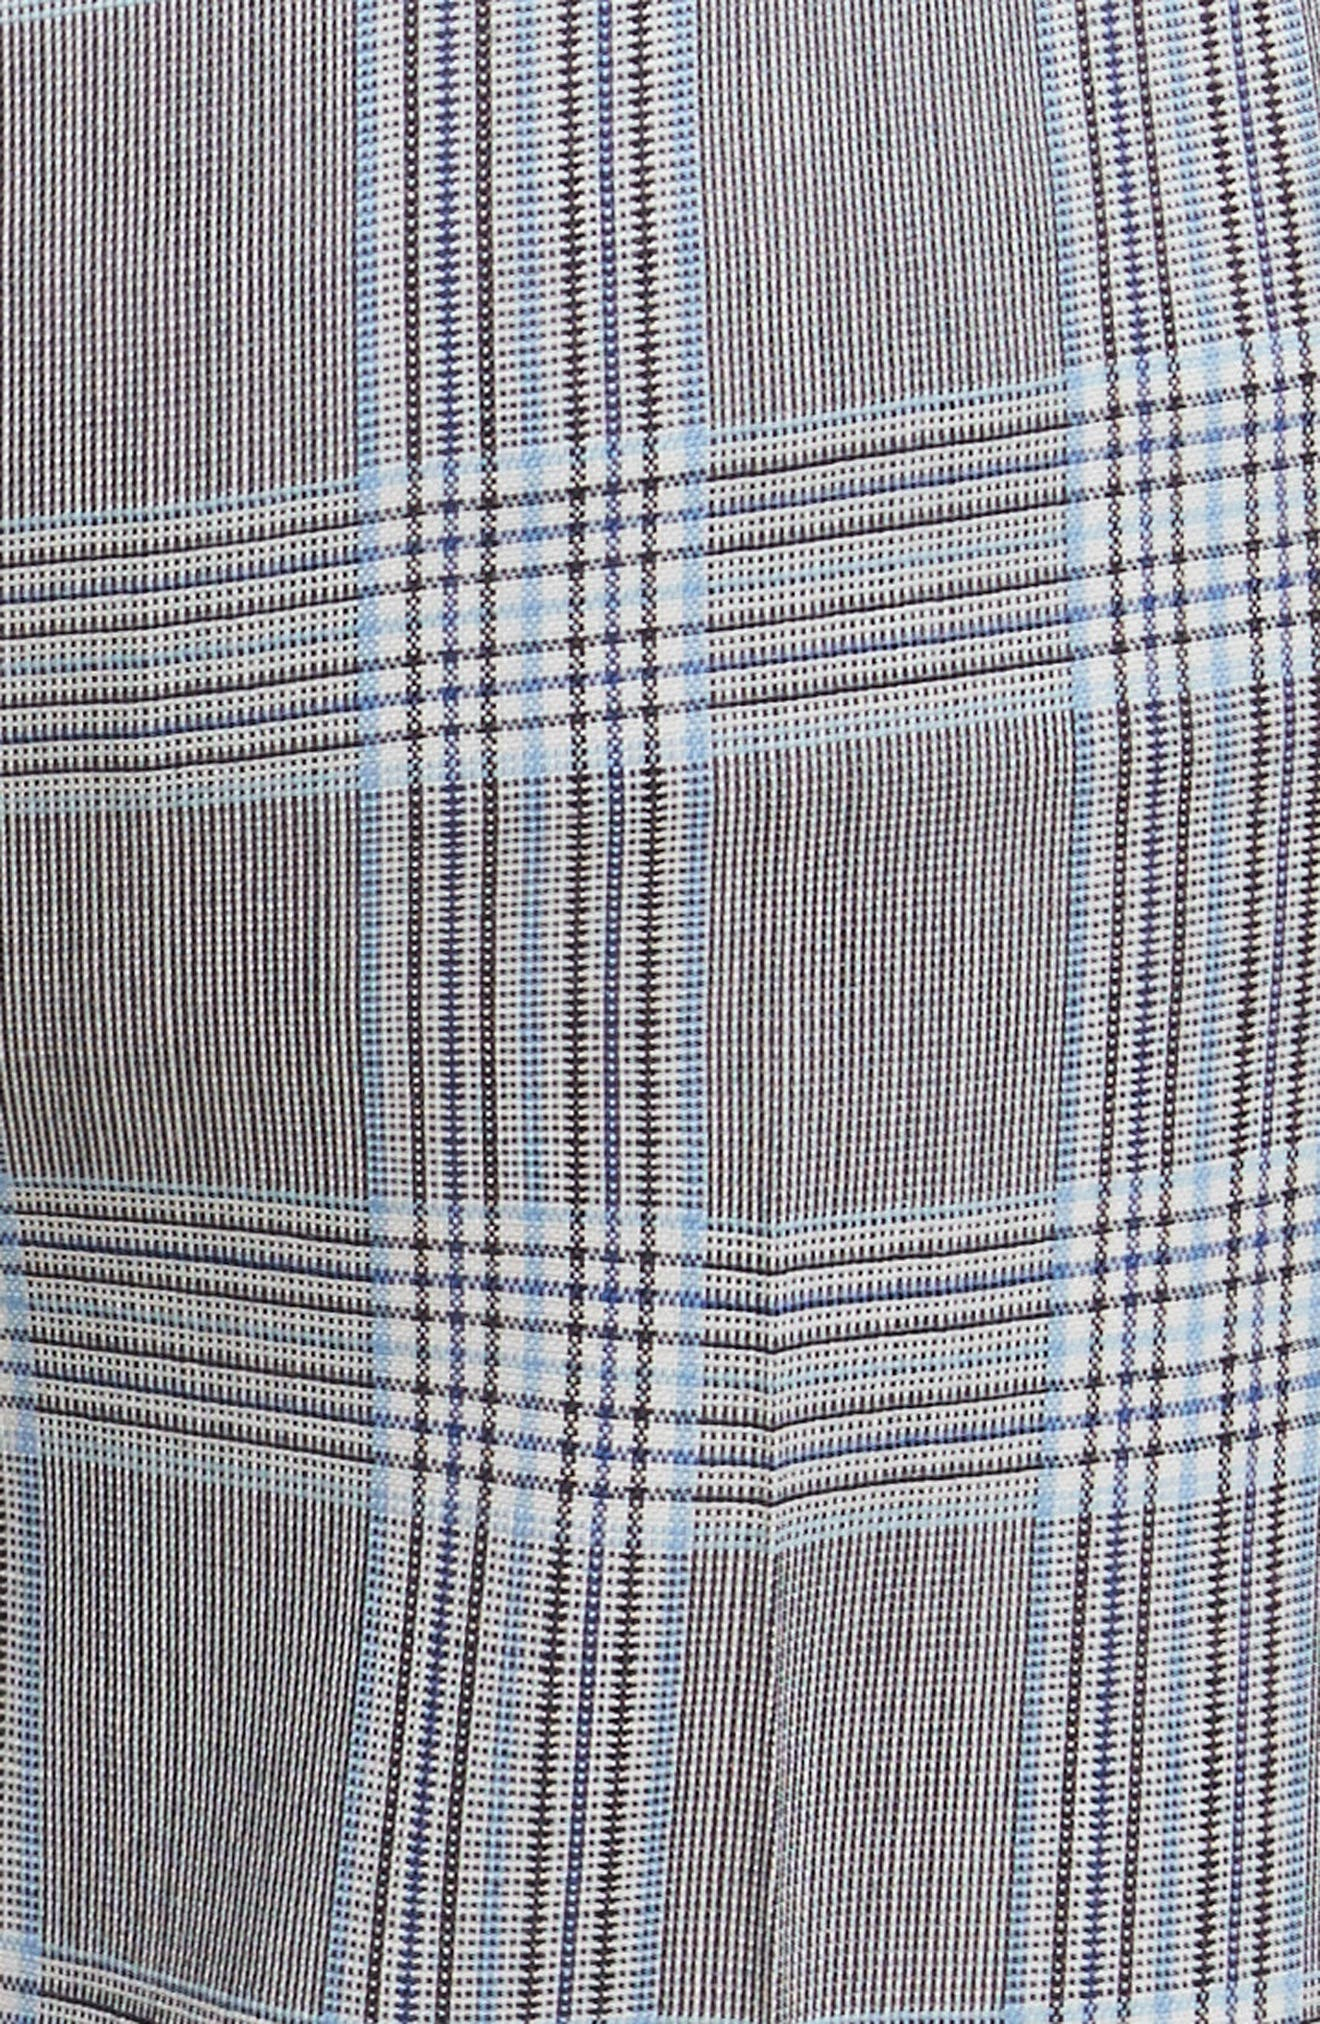 Maple Check 2 Straight Crop Trousers,                             Alternate thumbnail 5, color,                             115